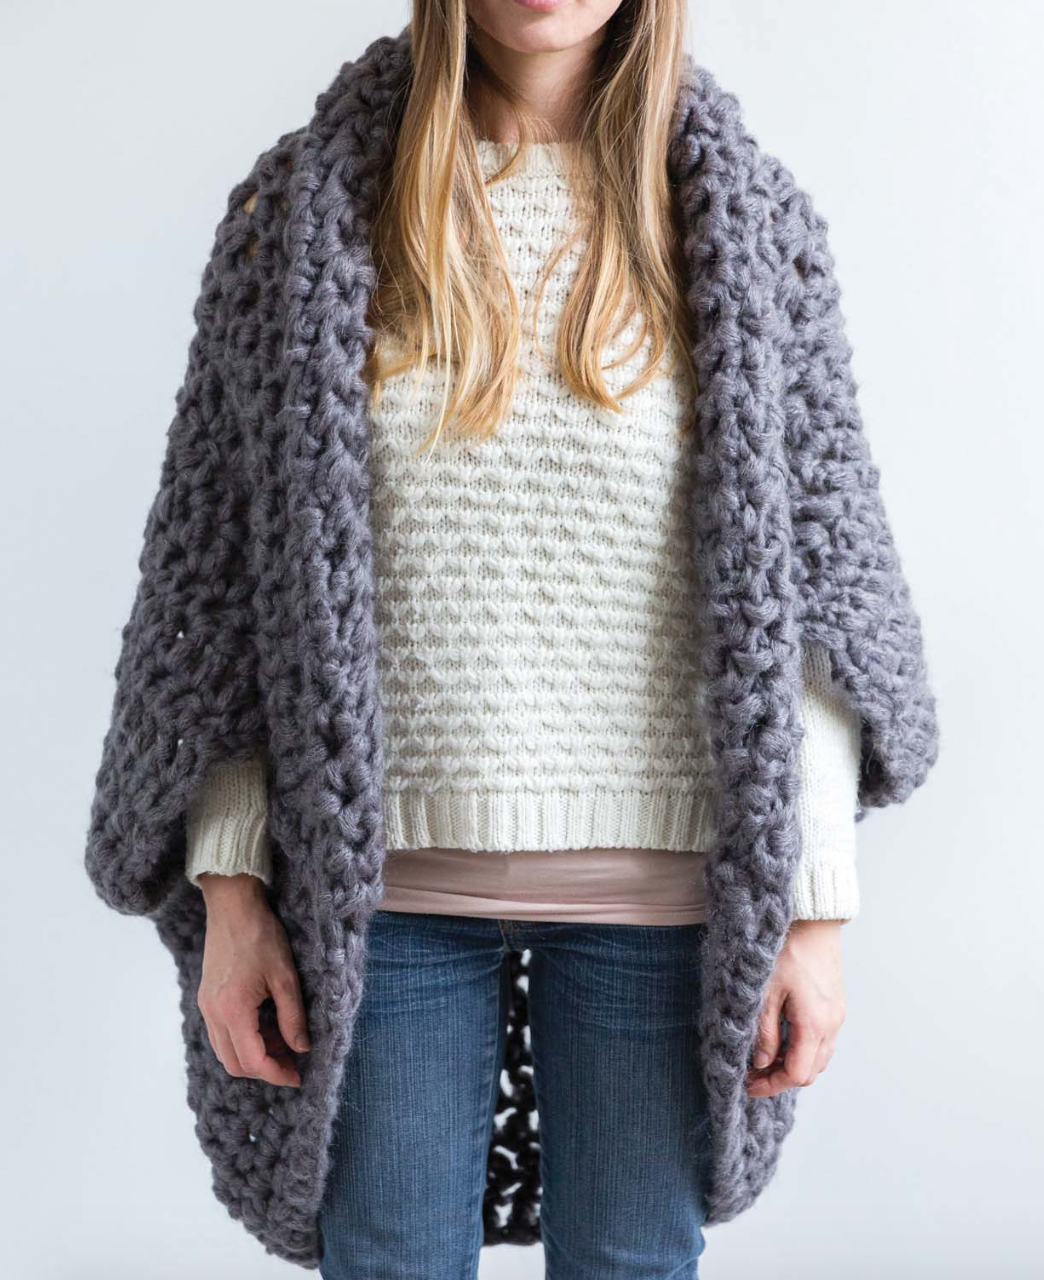 10a26cfc2 I decided to make the Cocoon Shrug and show you guys. Disclaimer  I wanted to  buy the exact yarn that Sarah used (Rico Fashion Gigantic Mohair)